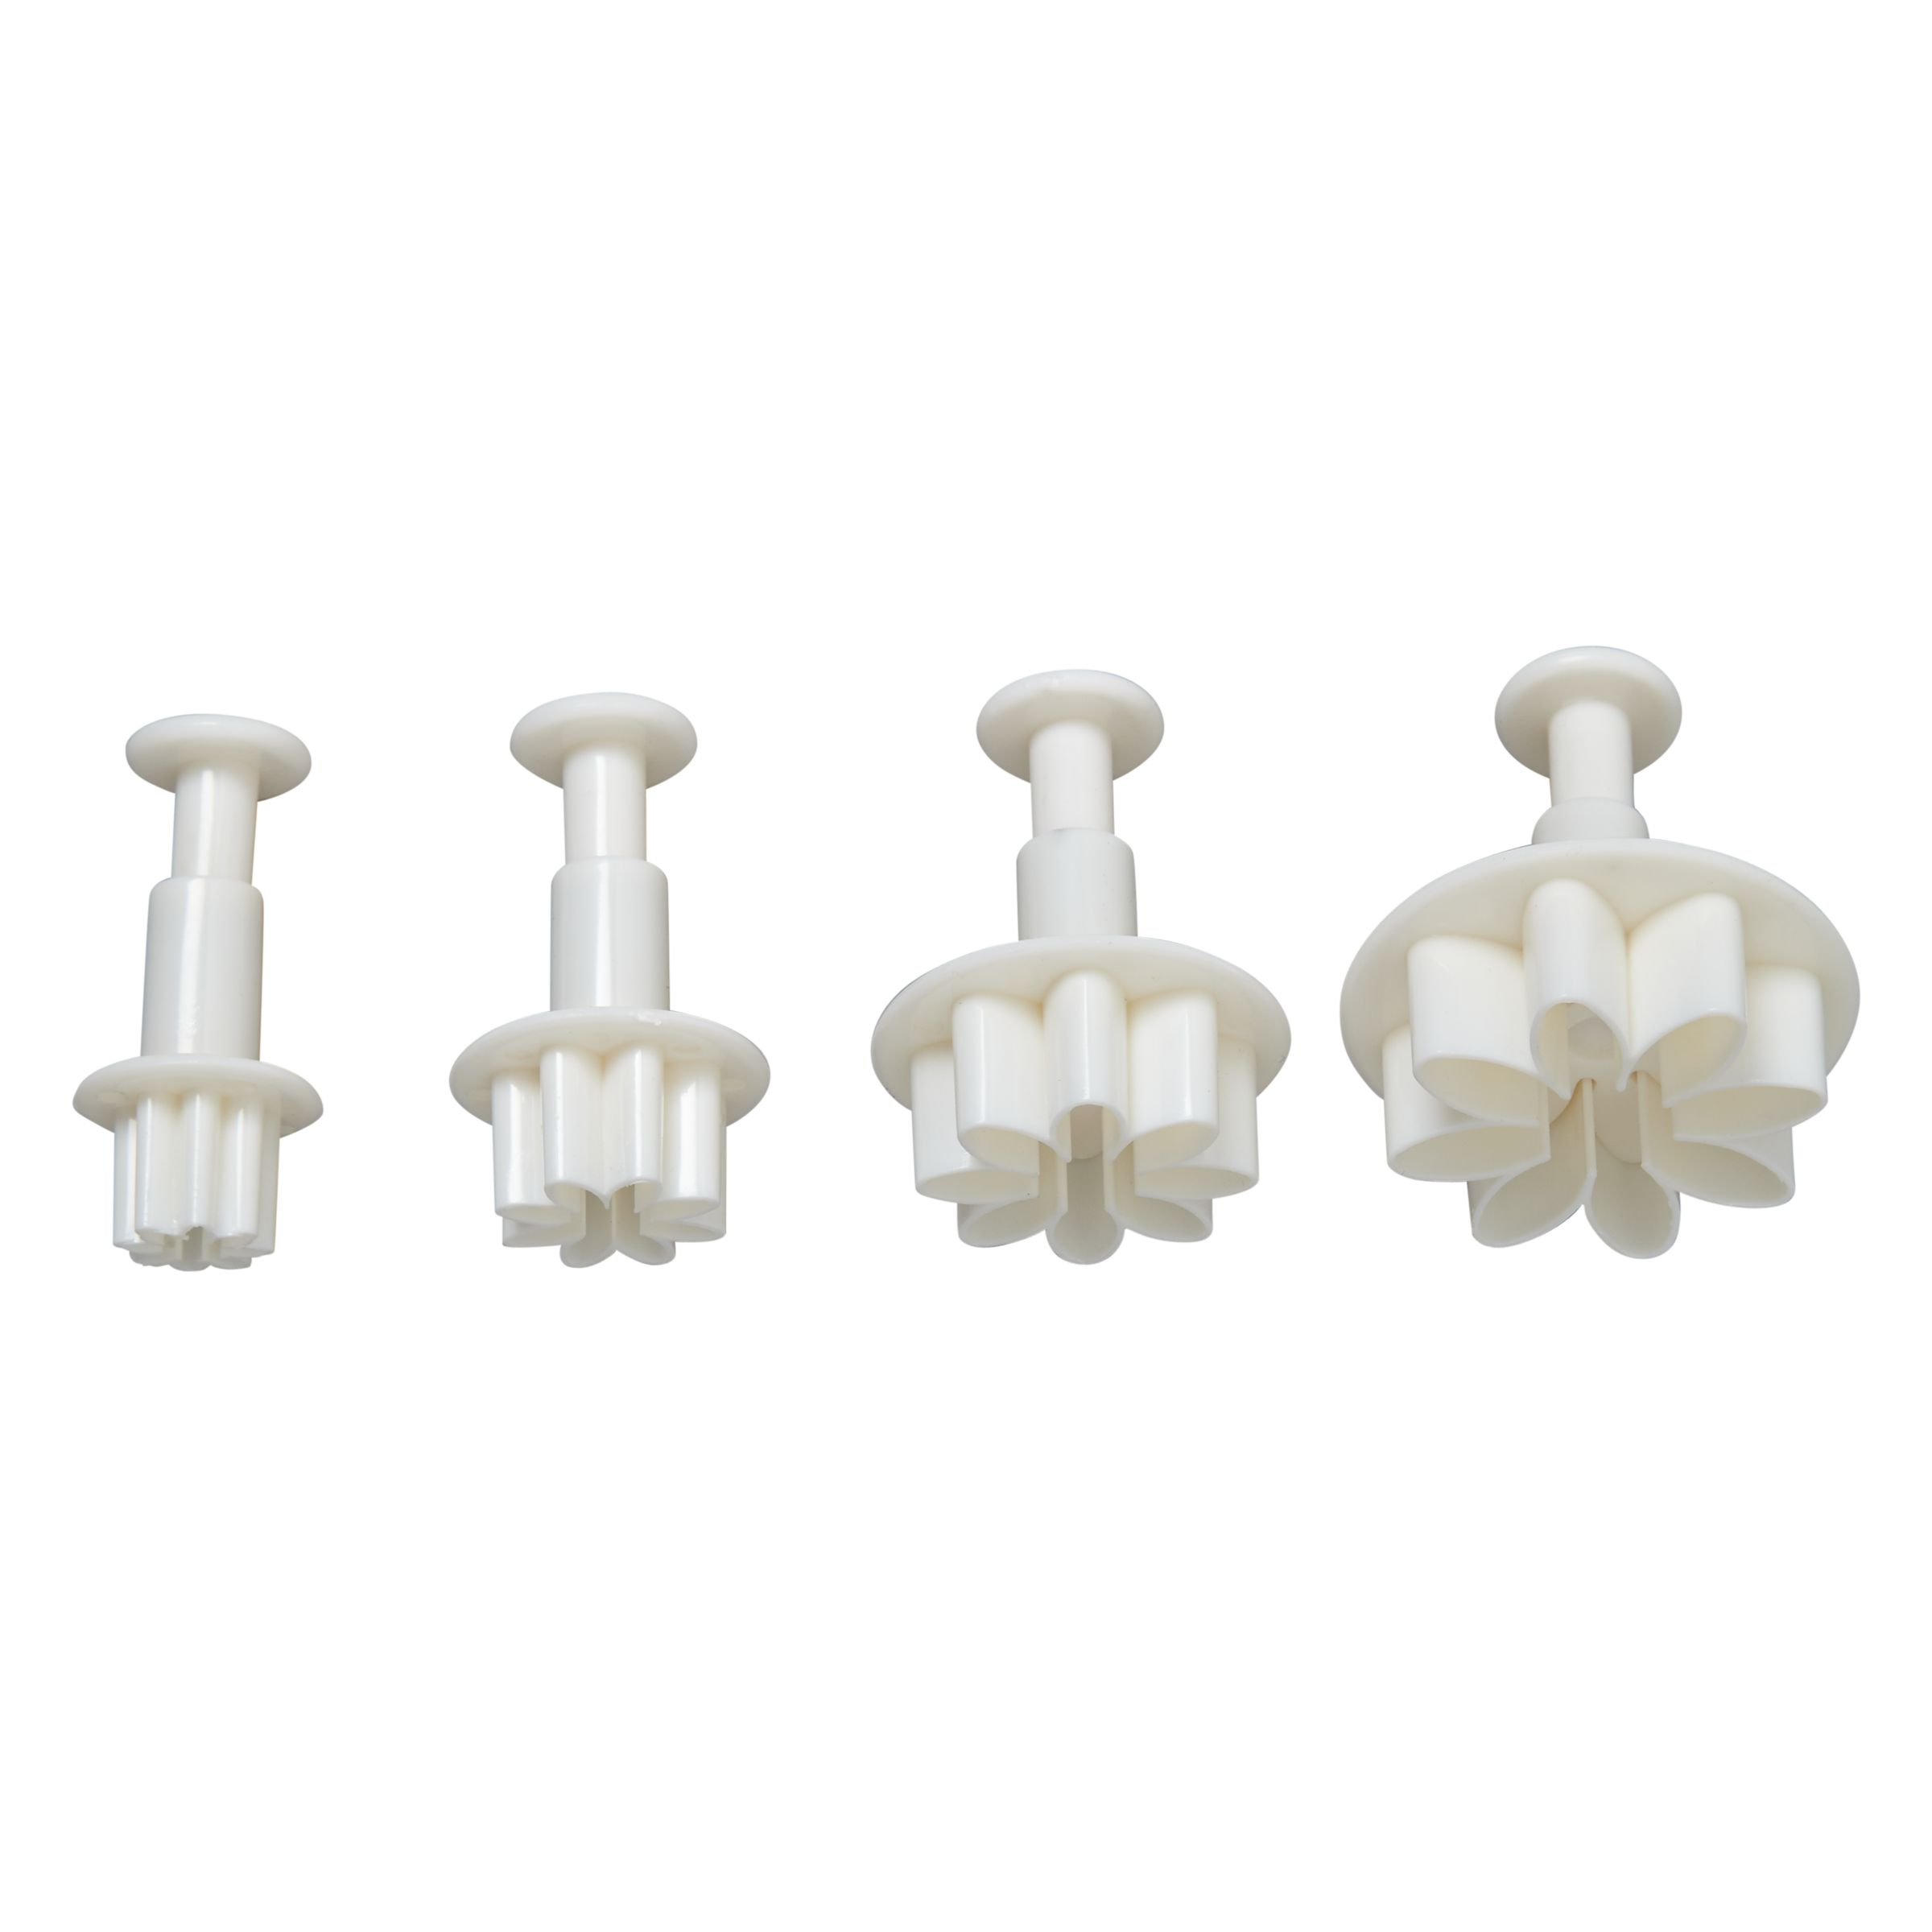 Tala Tala Daisy Cookie Cutters, Set of 4